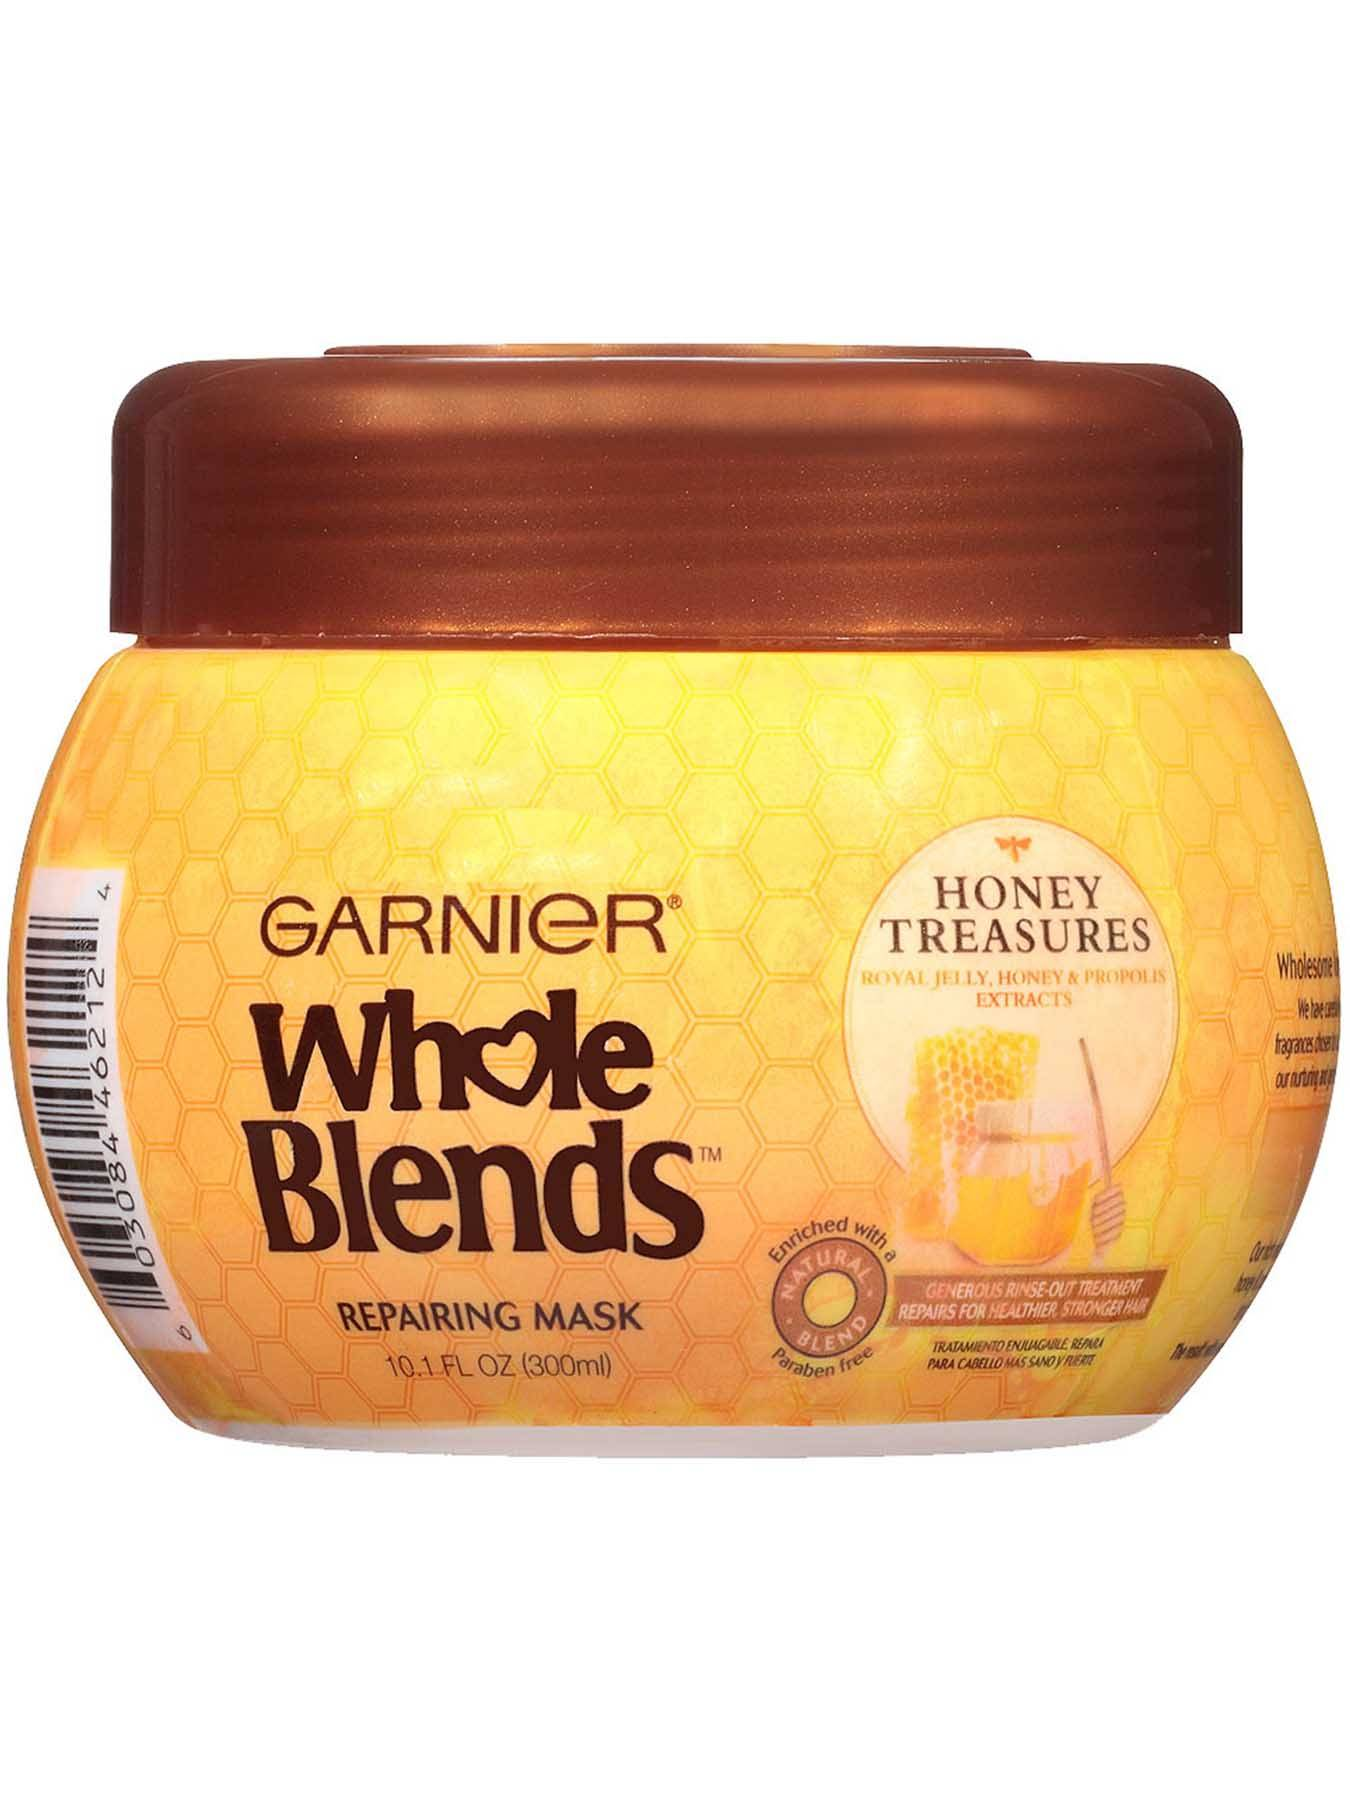 Garnier Whole Blends Repairing Mask Honey Treasures Front